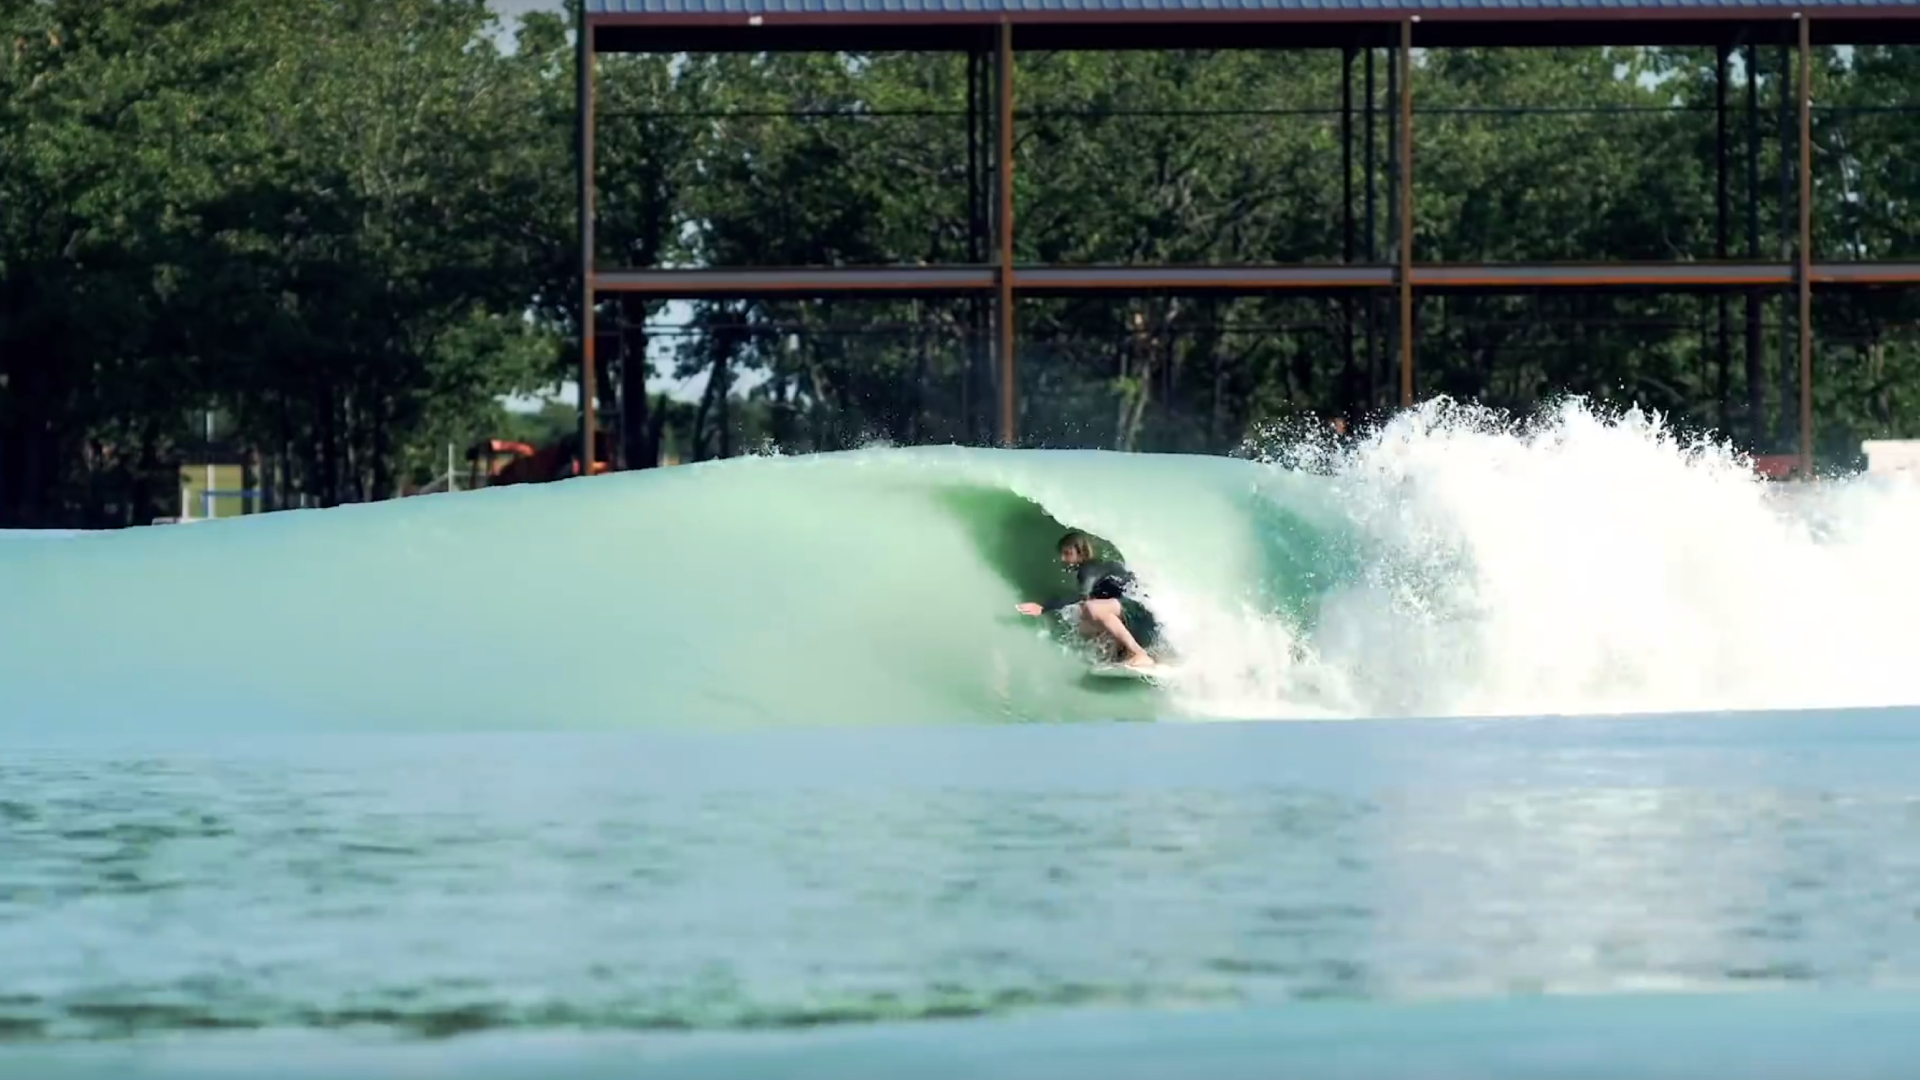 All the Waco wave pool prices, hours and info for BSR Surf